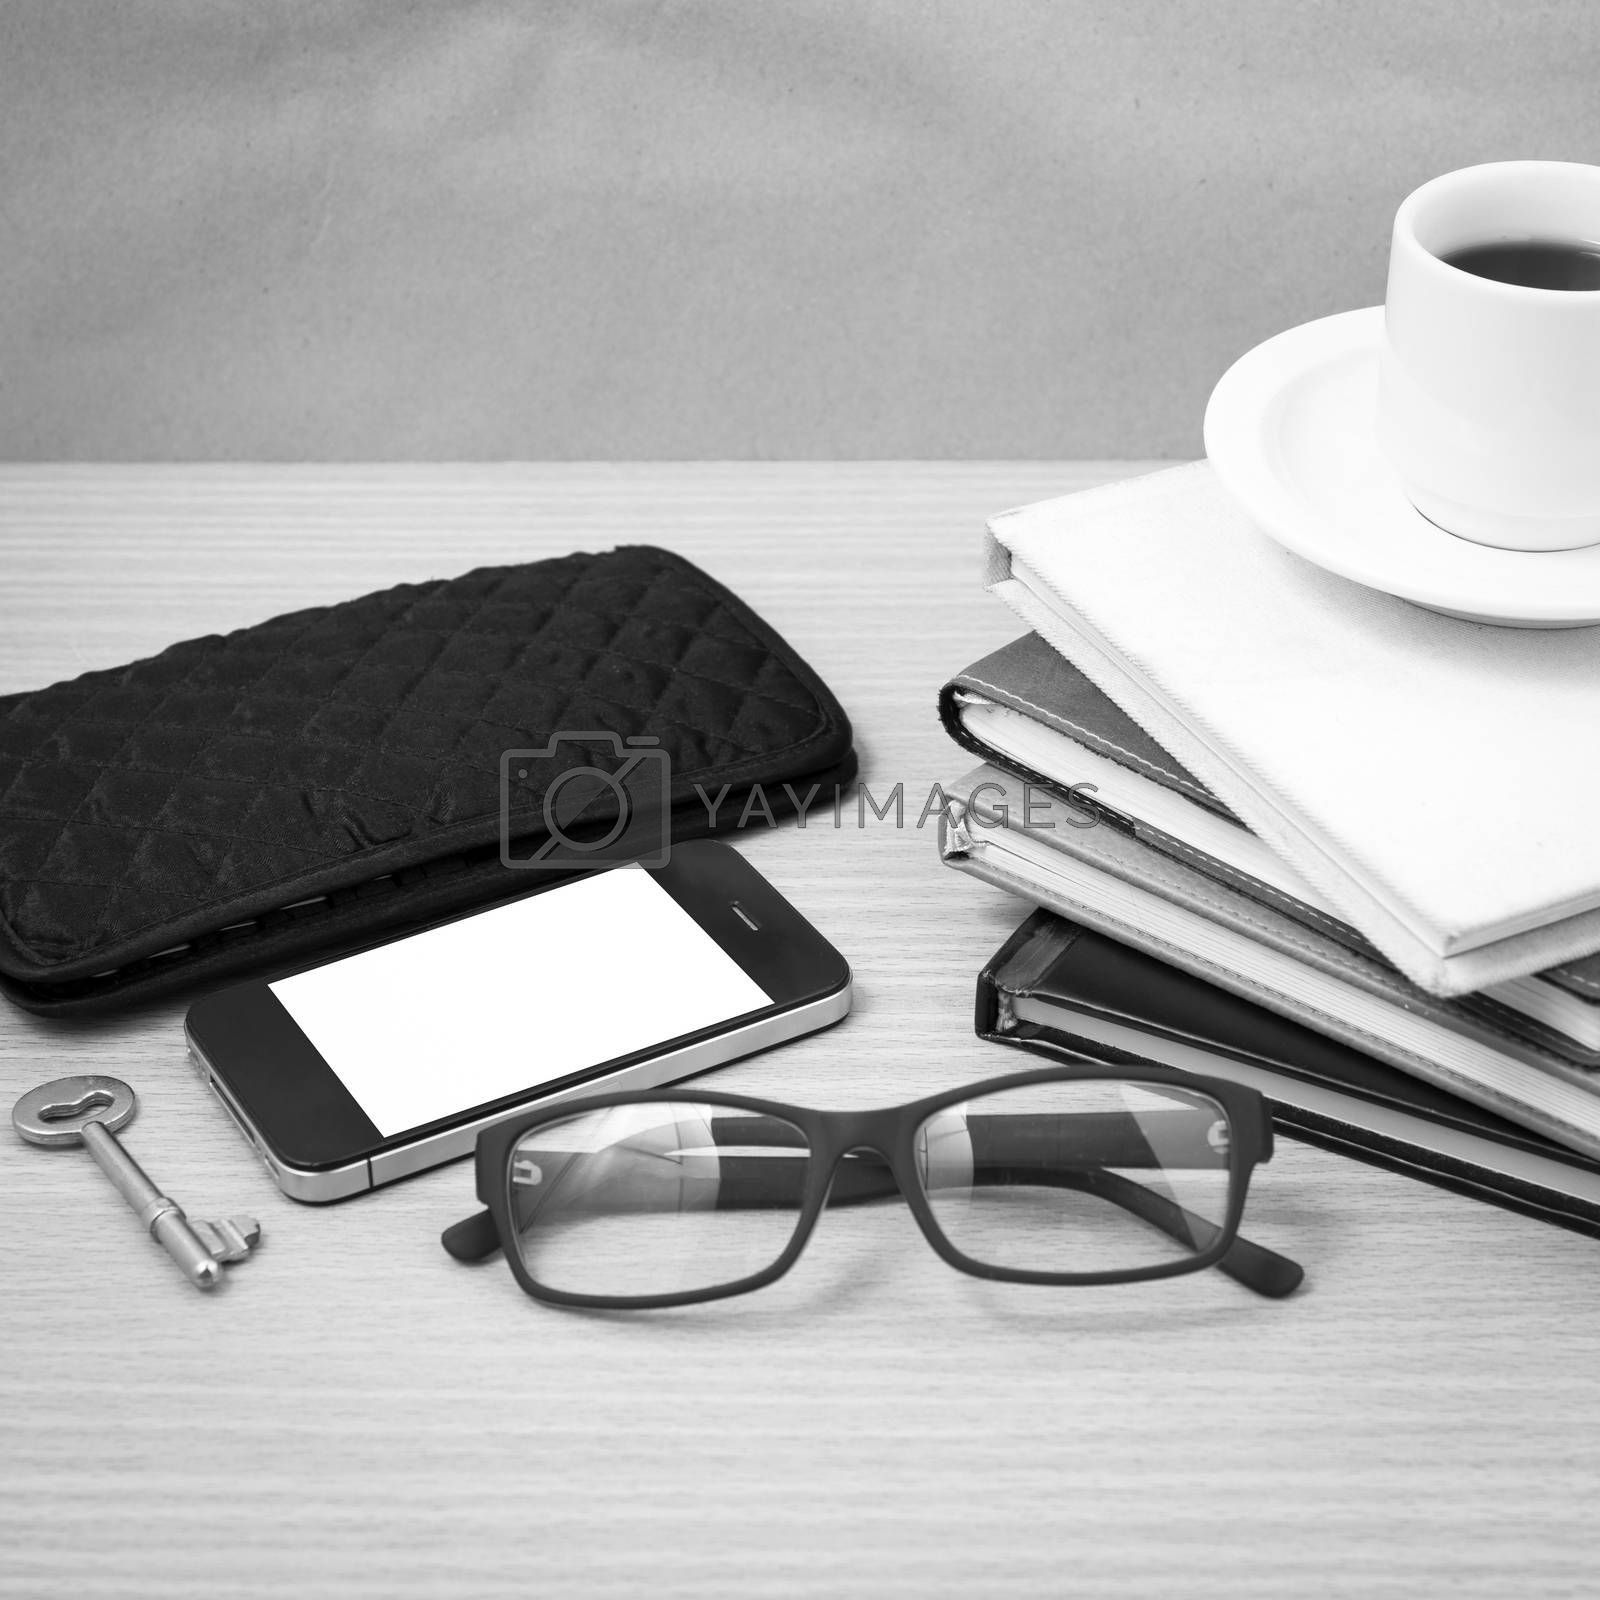 coffee and phone with stack of book,key,eyeglasses and wallet bl by Nisakorn Neera